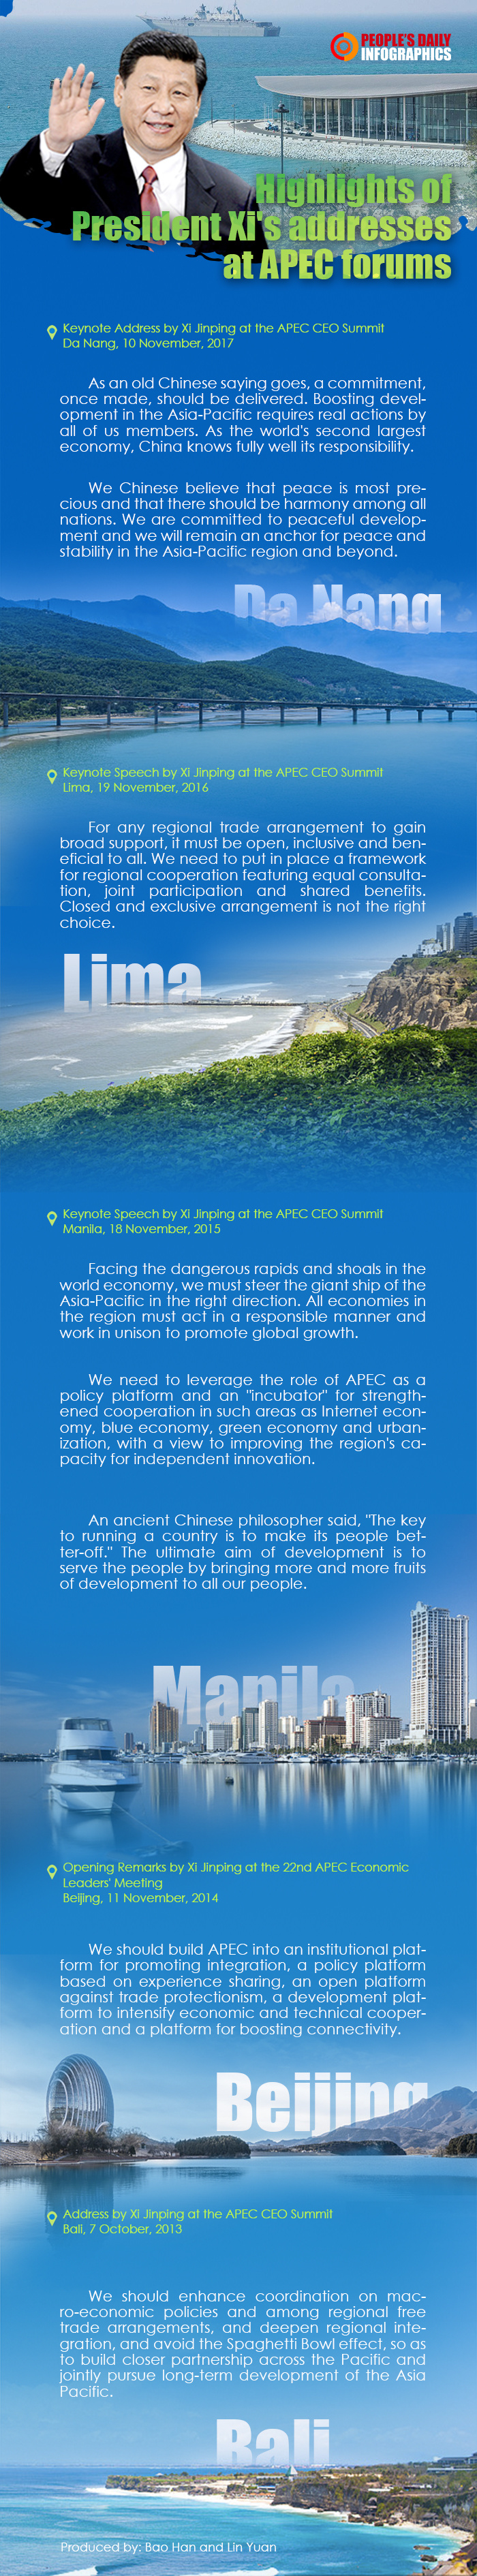 Highlights of President Xi's addresses at APEC forums